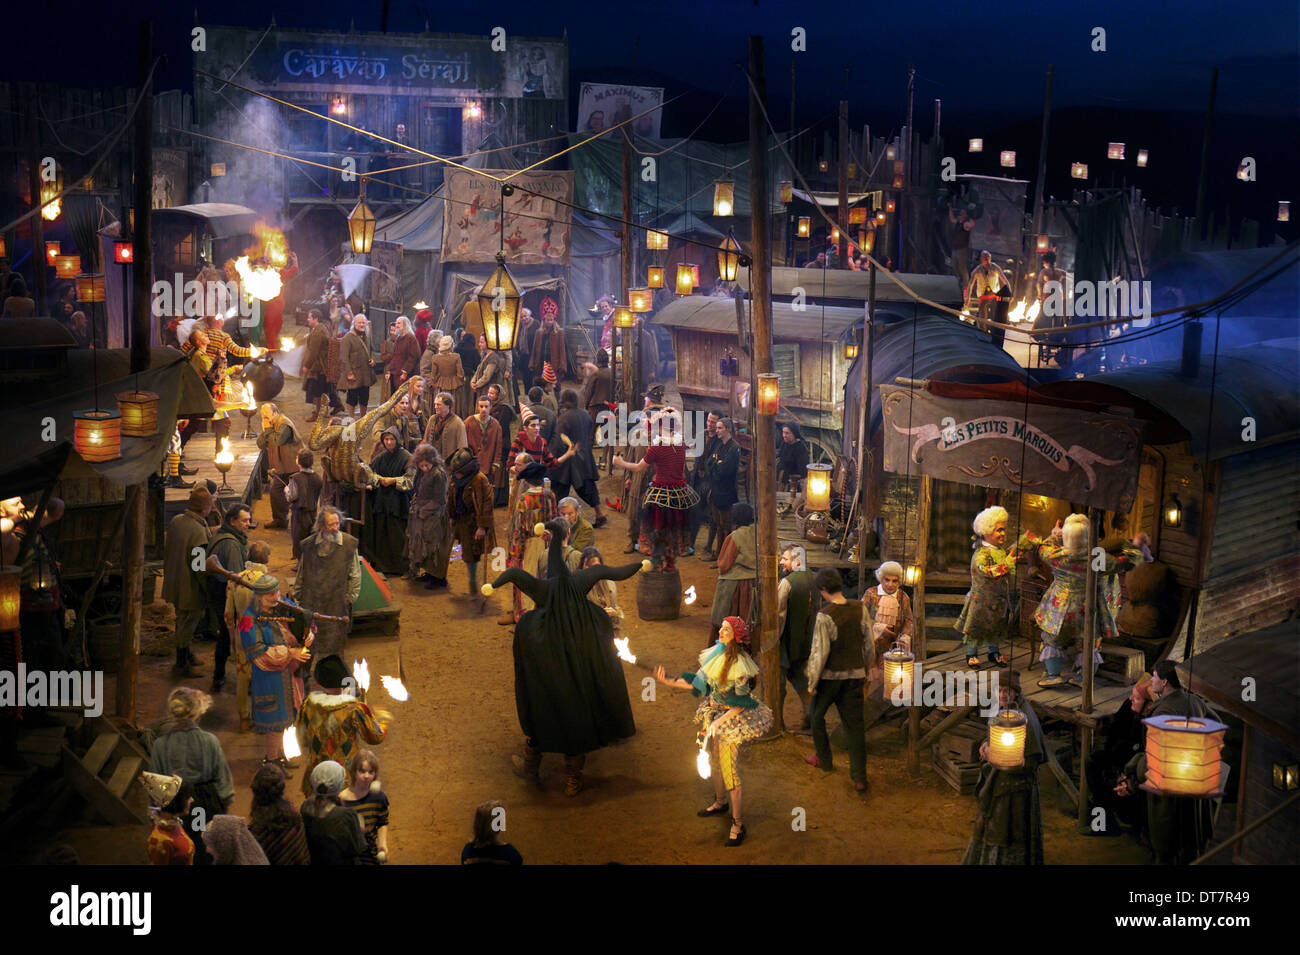 CARNIVAL SCENE THE MAN WHO LAUGHS; L'HOMME QUI RIT (2012) - Stock Image